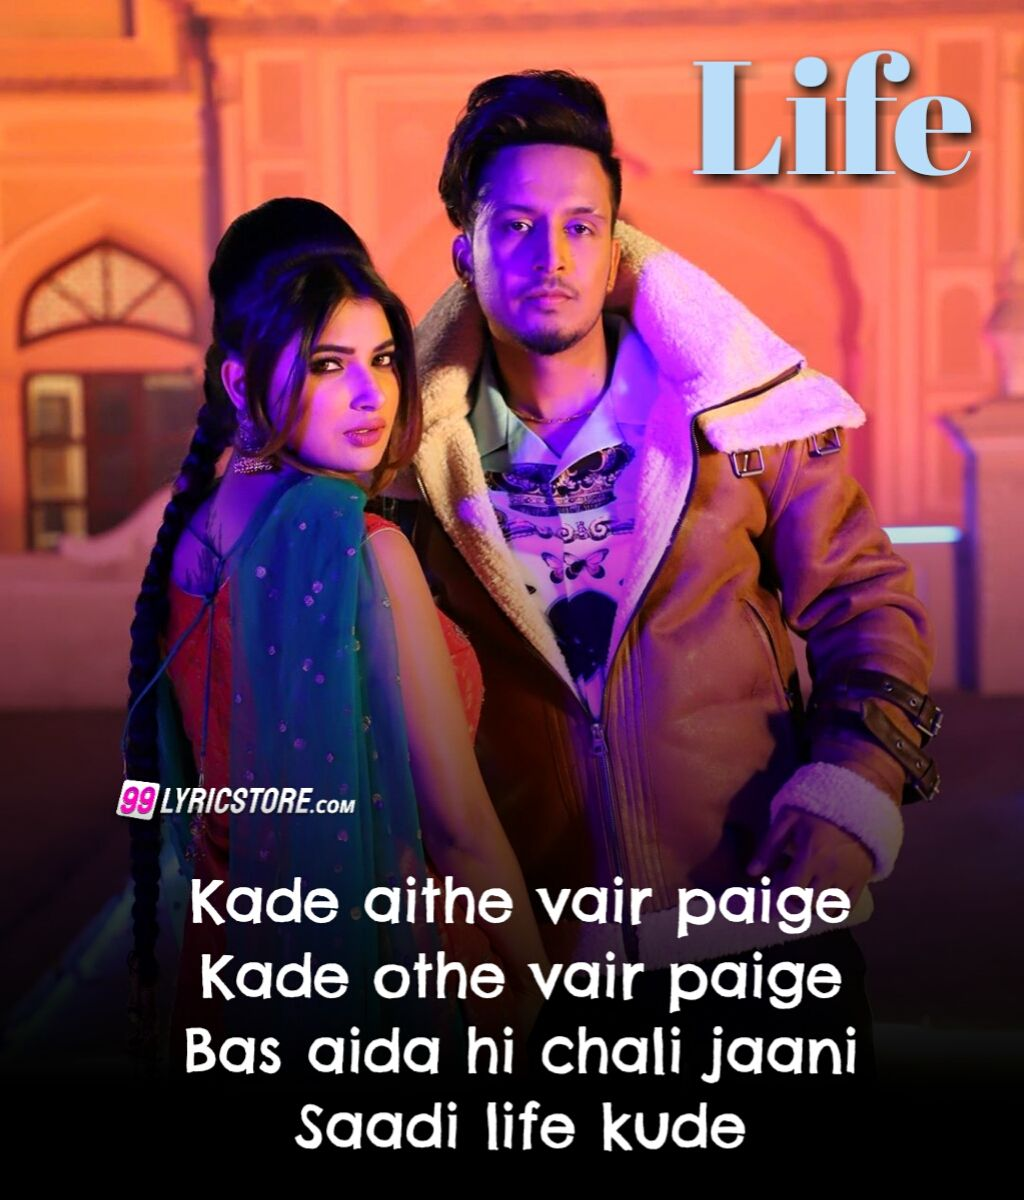 Life Punjabi Song Lyrics Sung by mohabbat brar and Gulrez Akhtar.